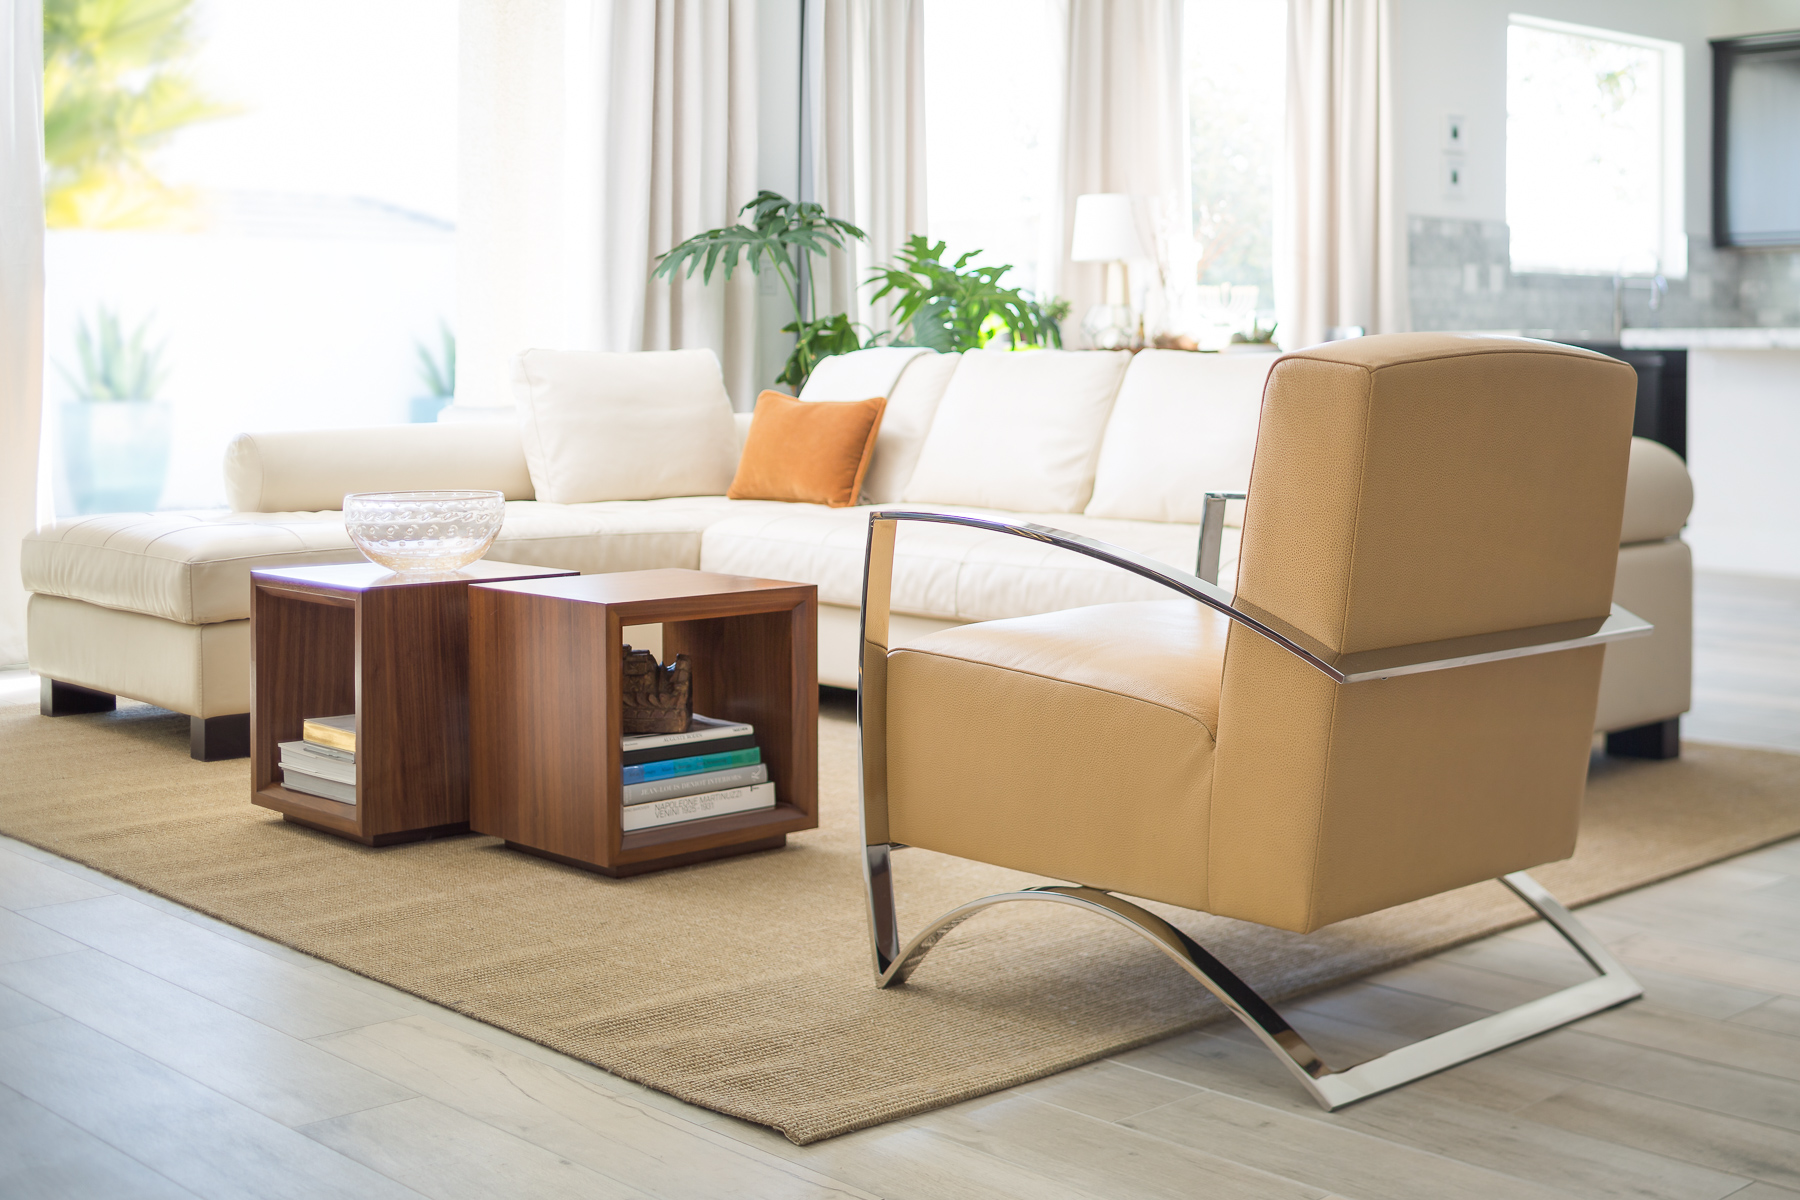 The Bent Chair in Living Room